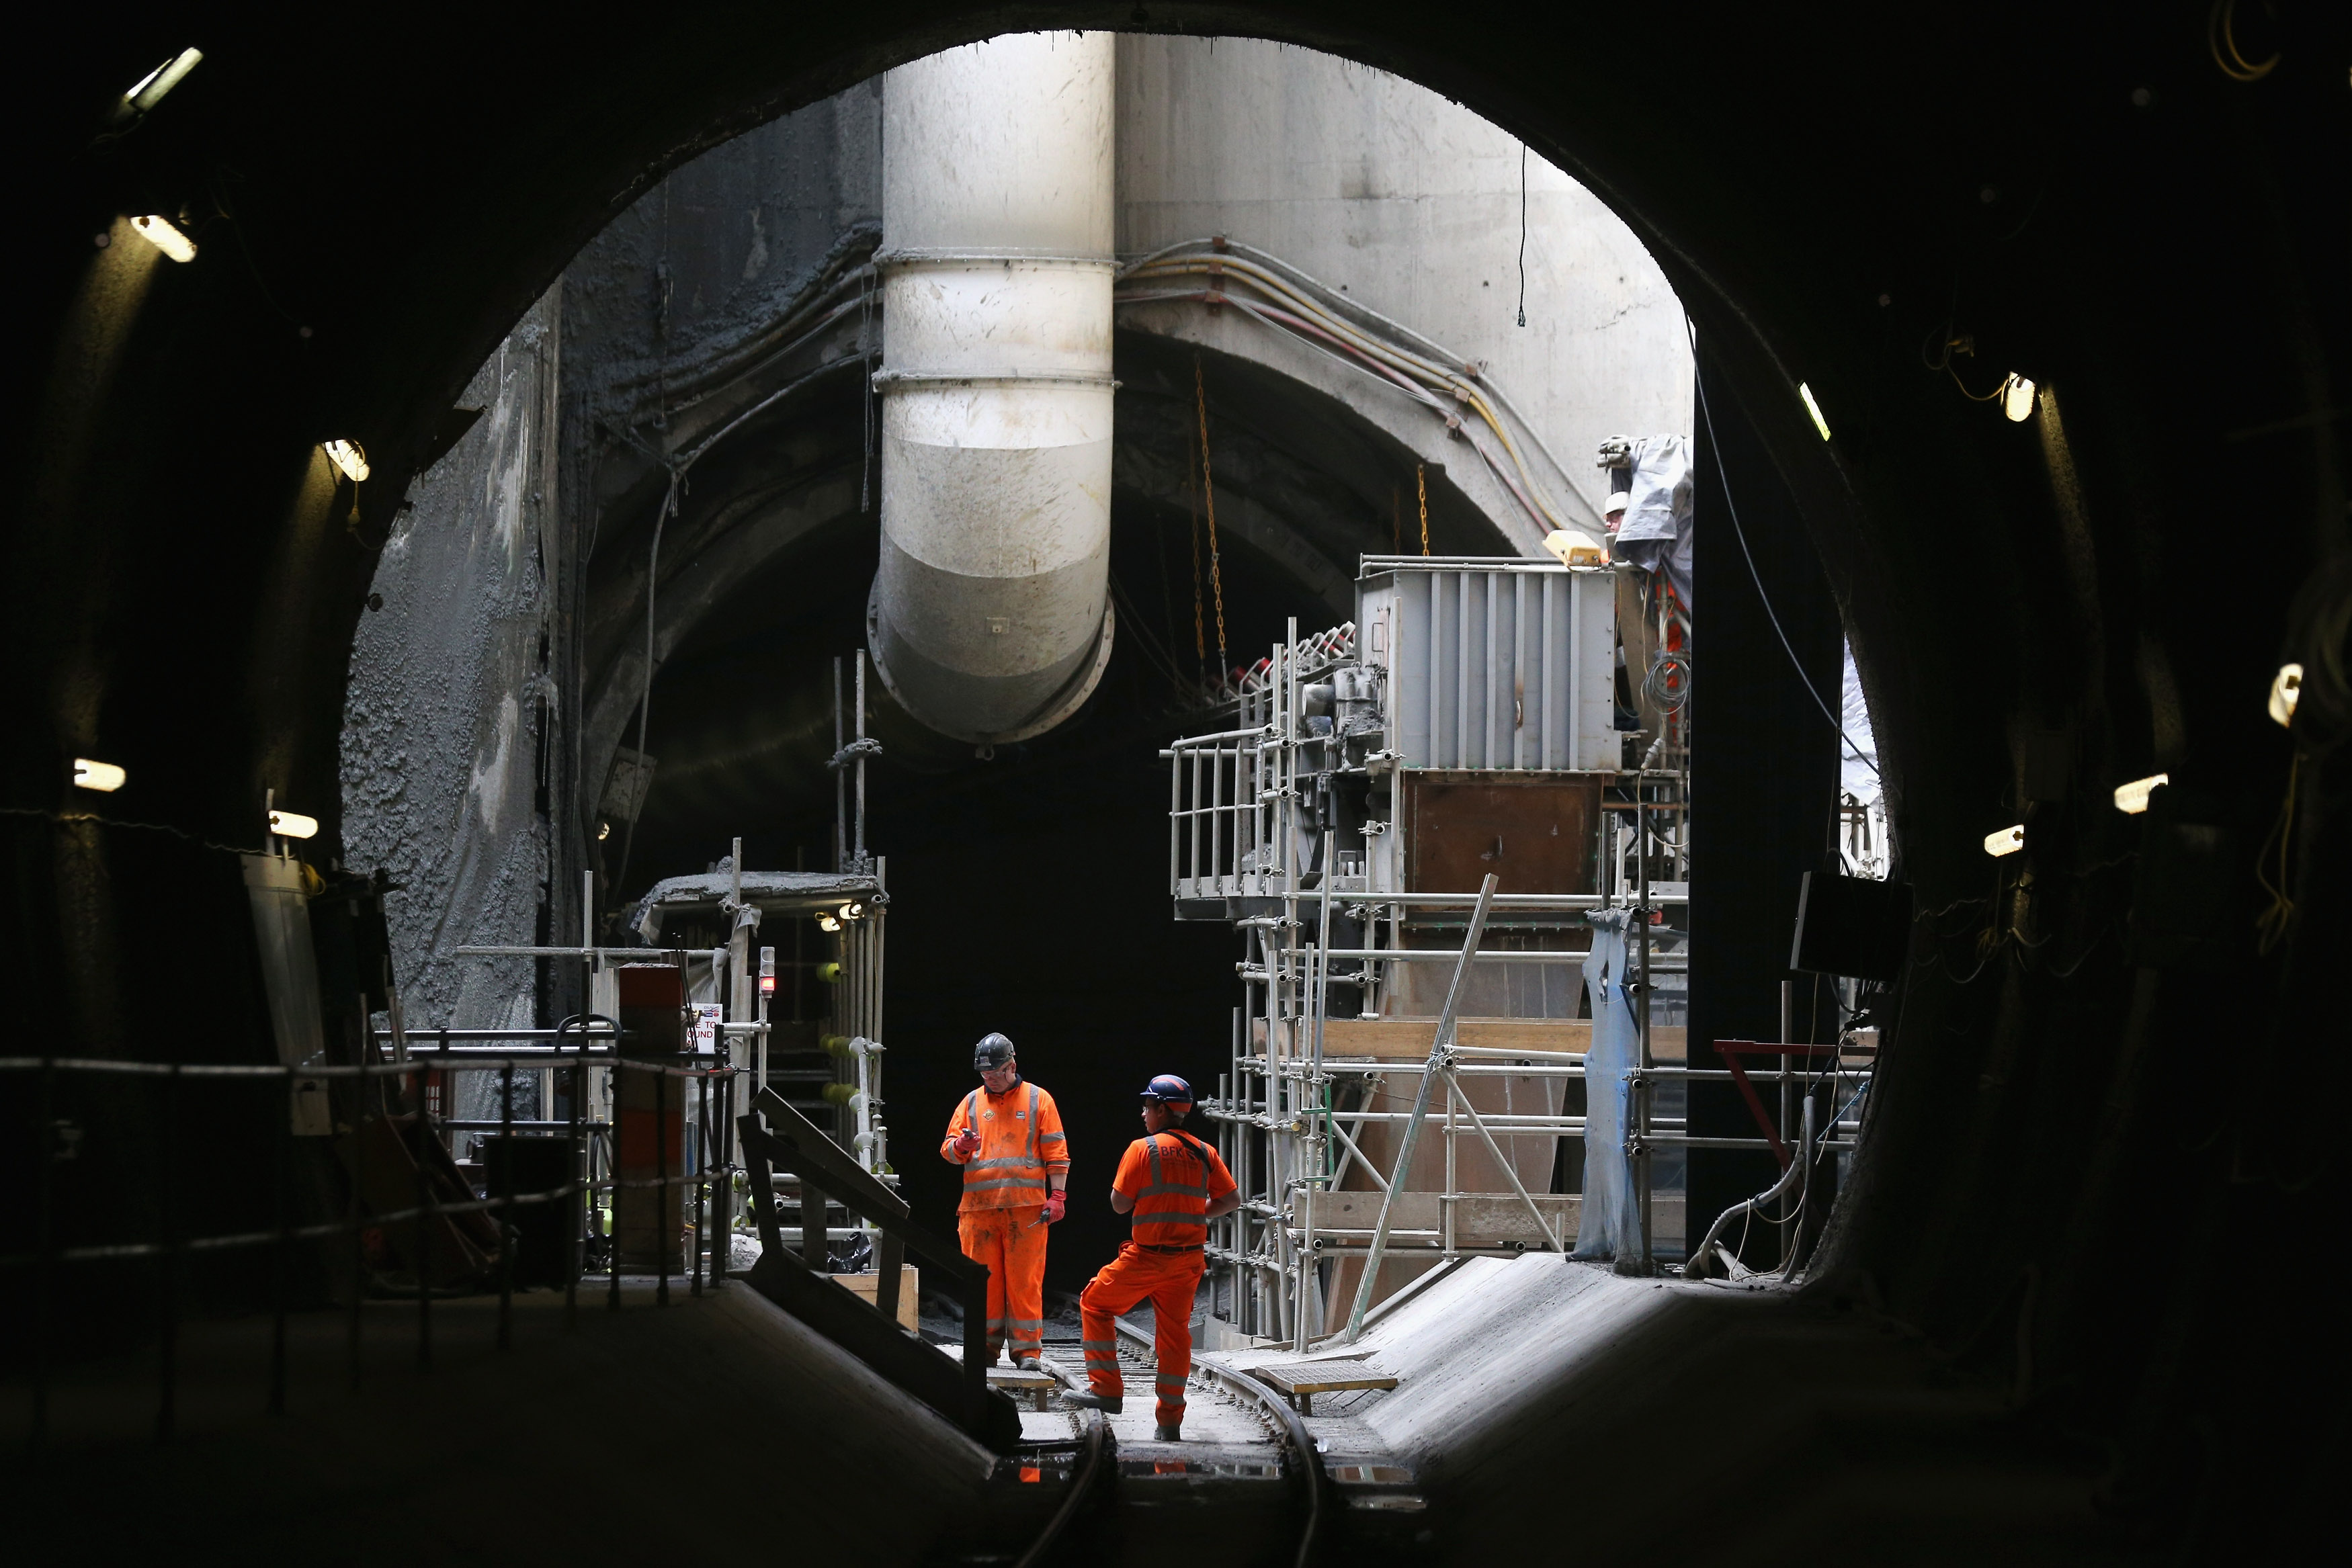 Work Continues On The Multi Million Pound Crossrail Project